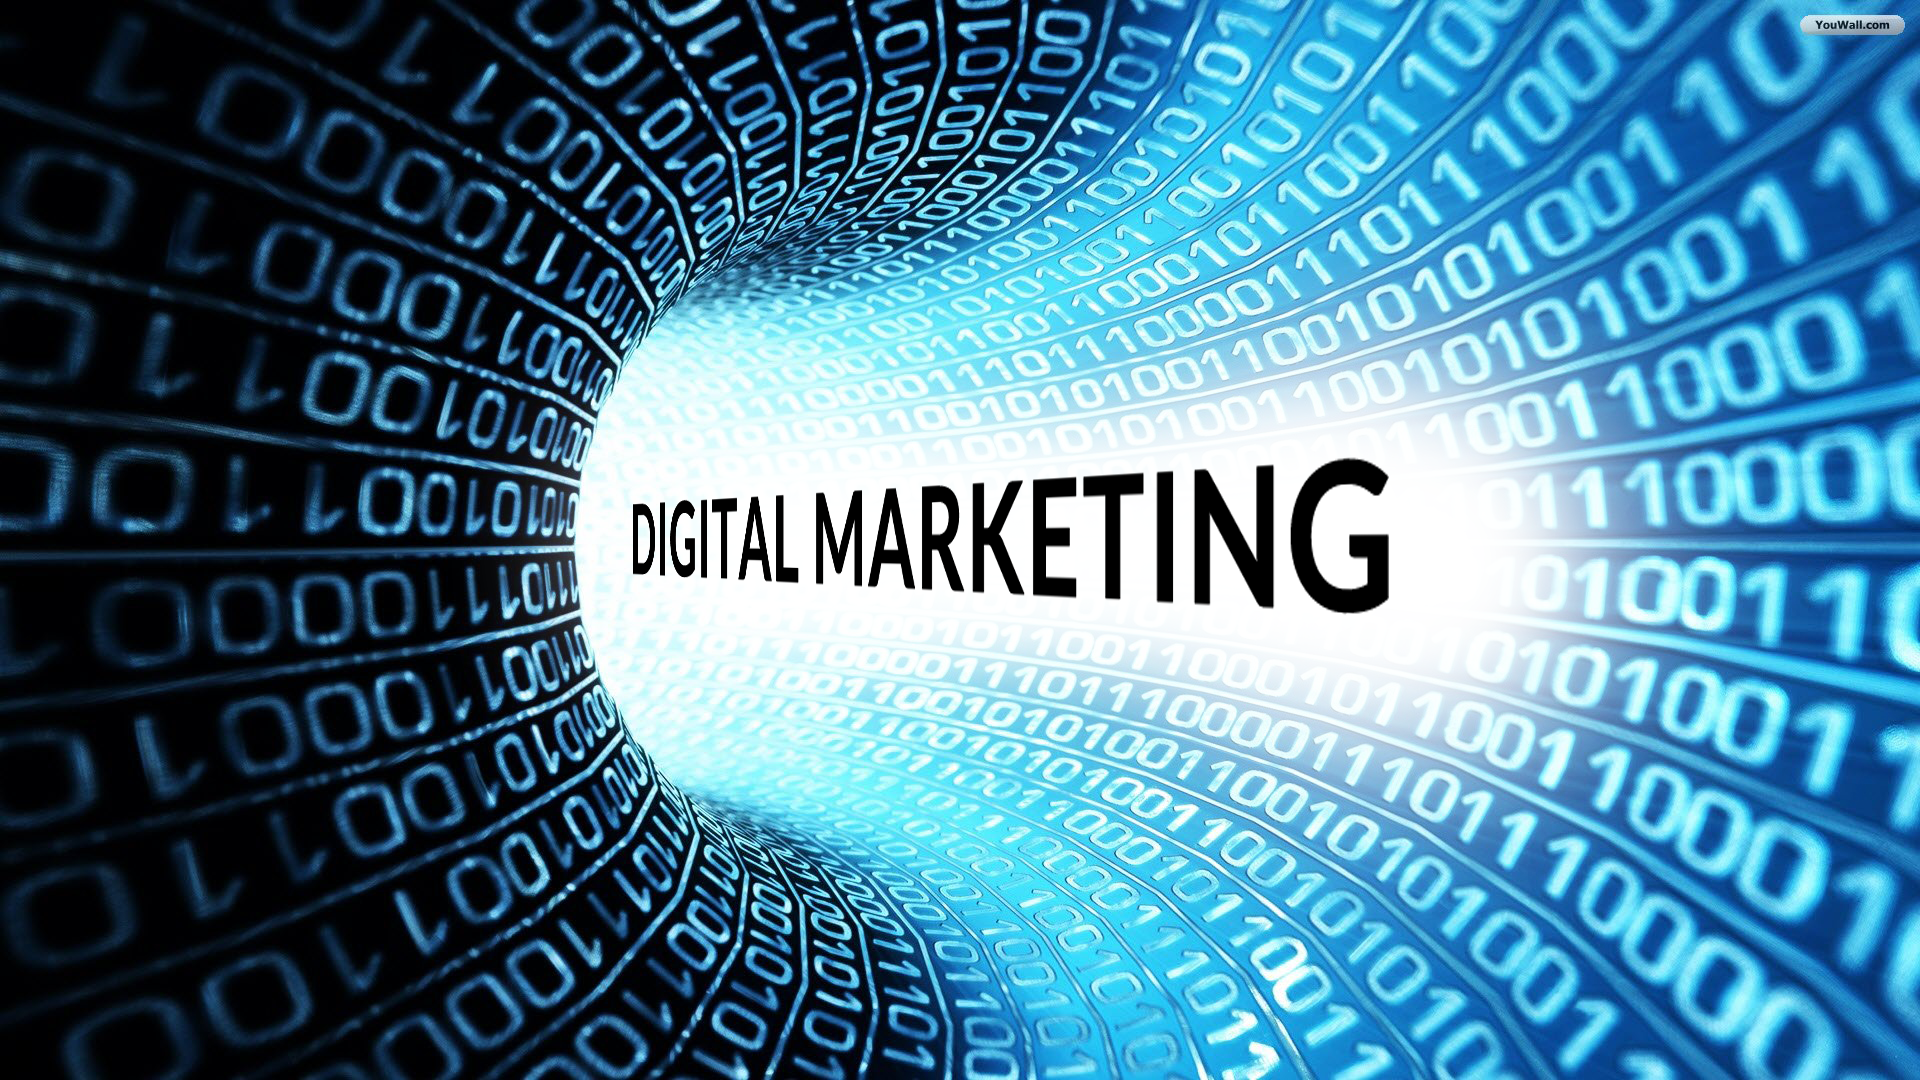 Digital Marketing is Still Marketing